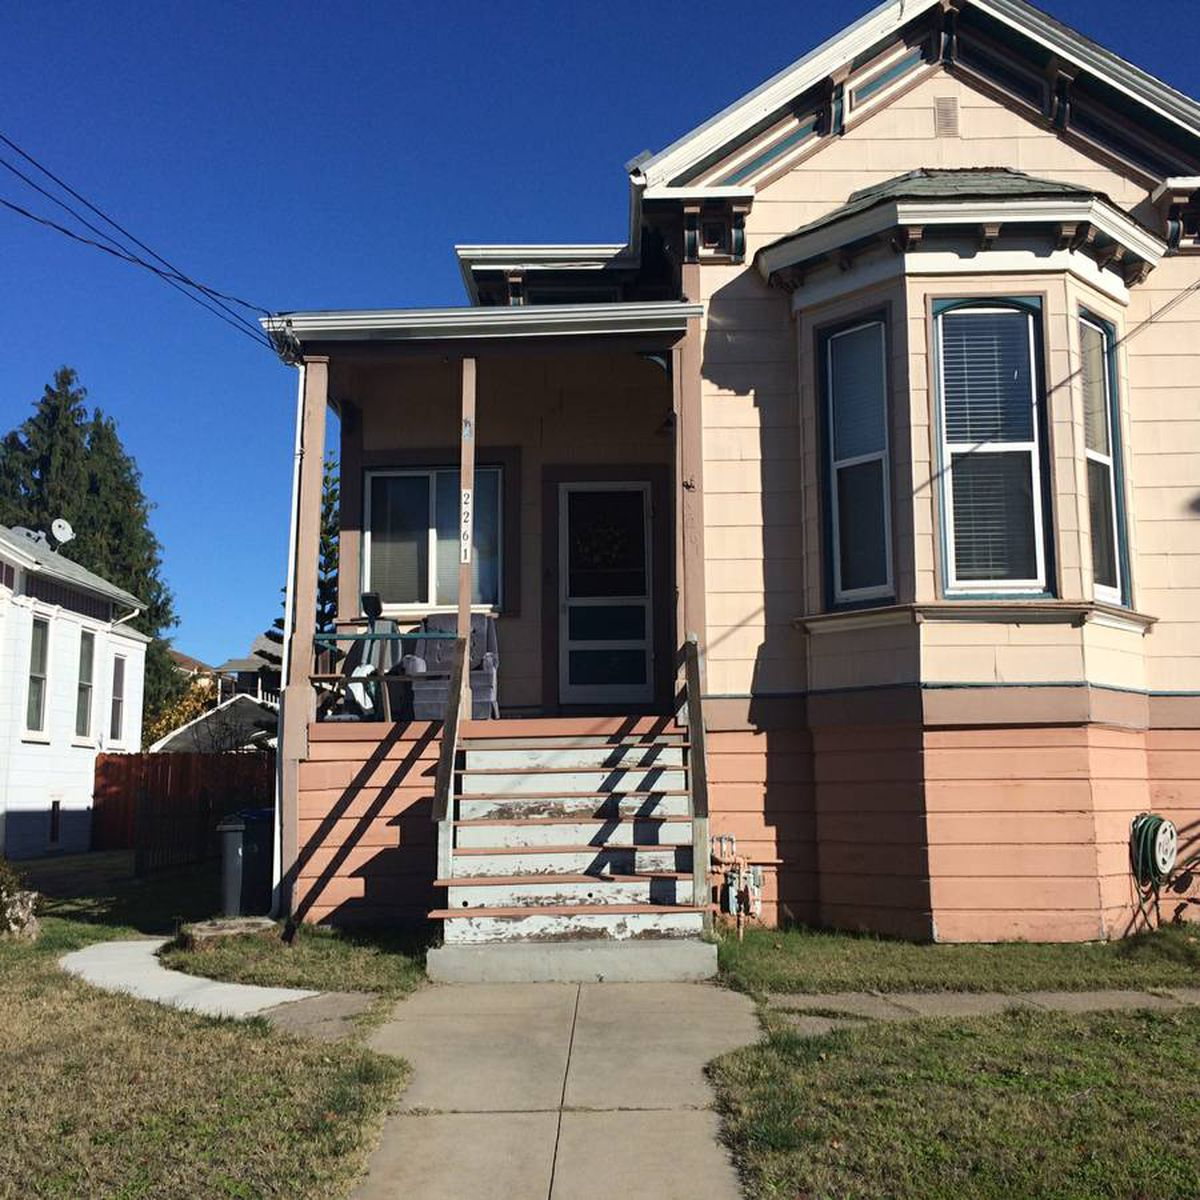 Apartments For Rent East Bay: Rent In East Bay: What $1,800 Gets You Right Now